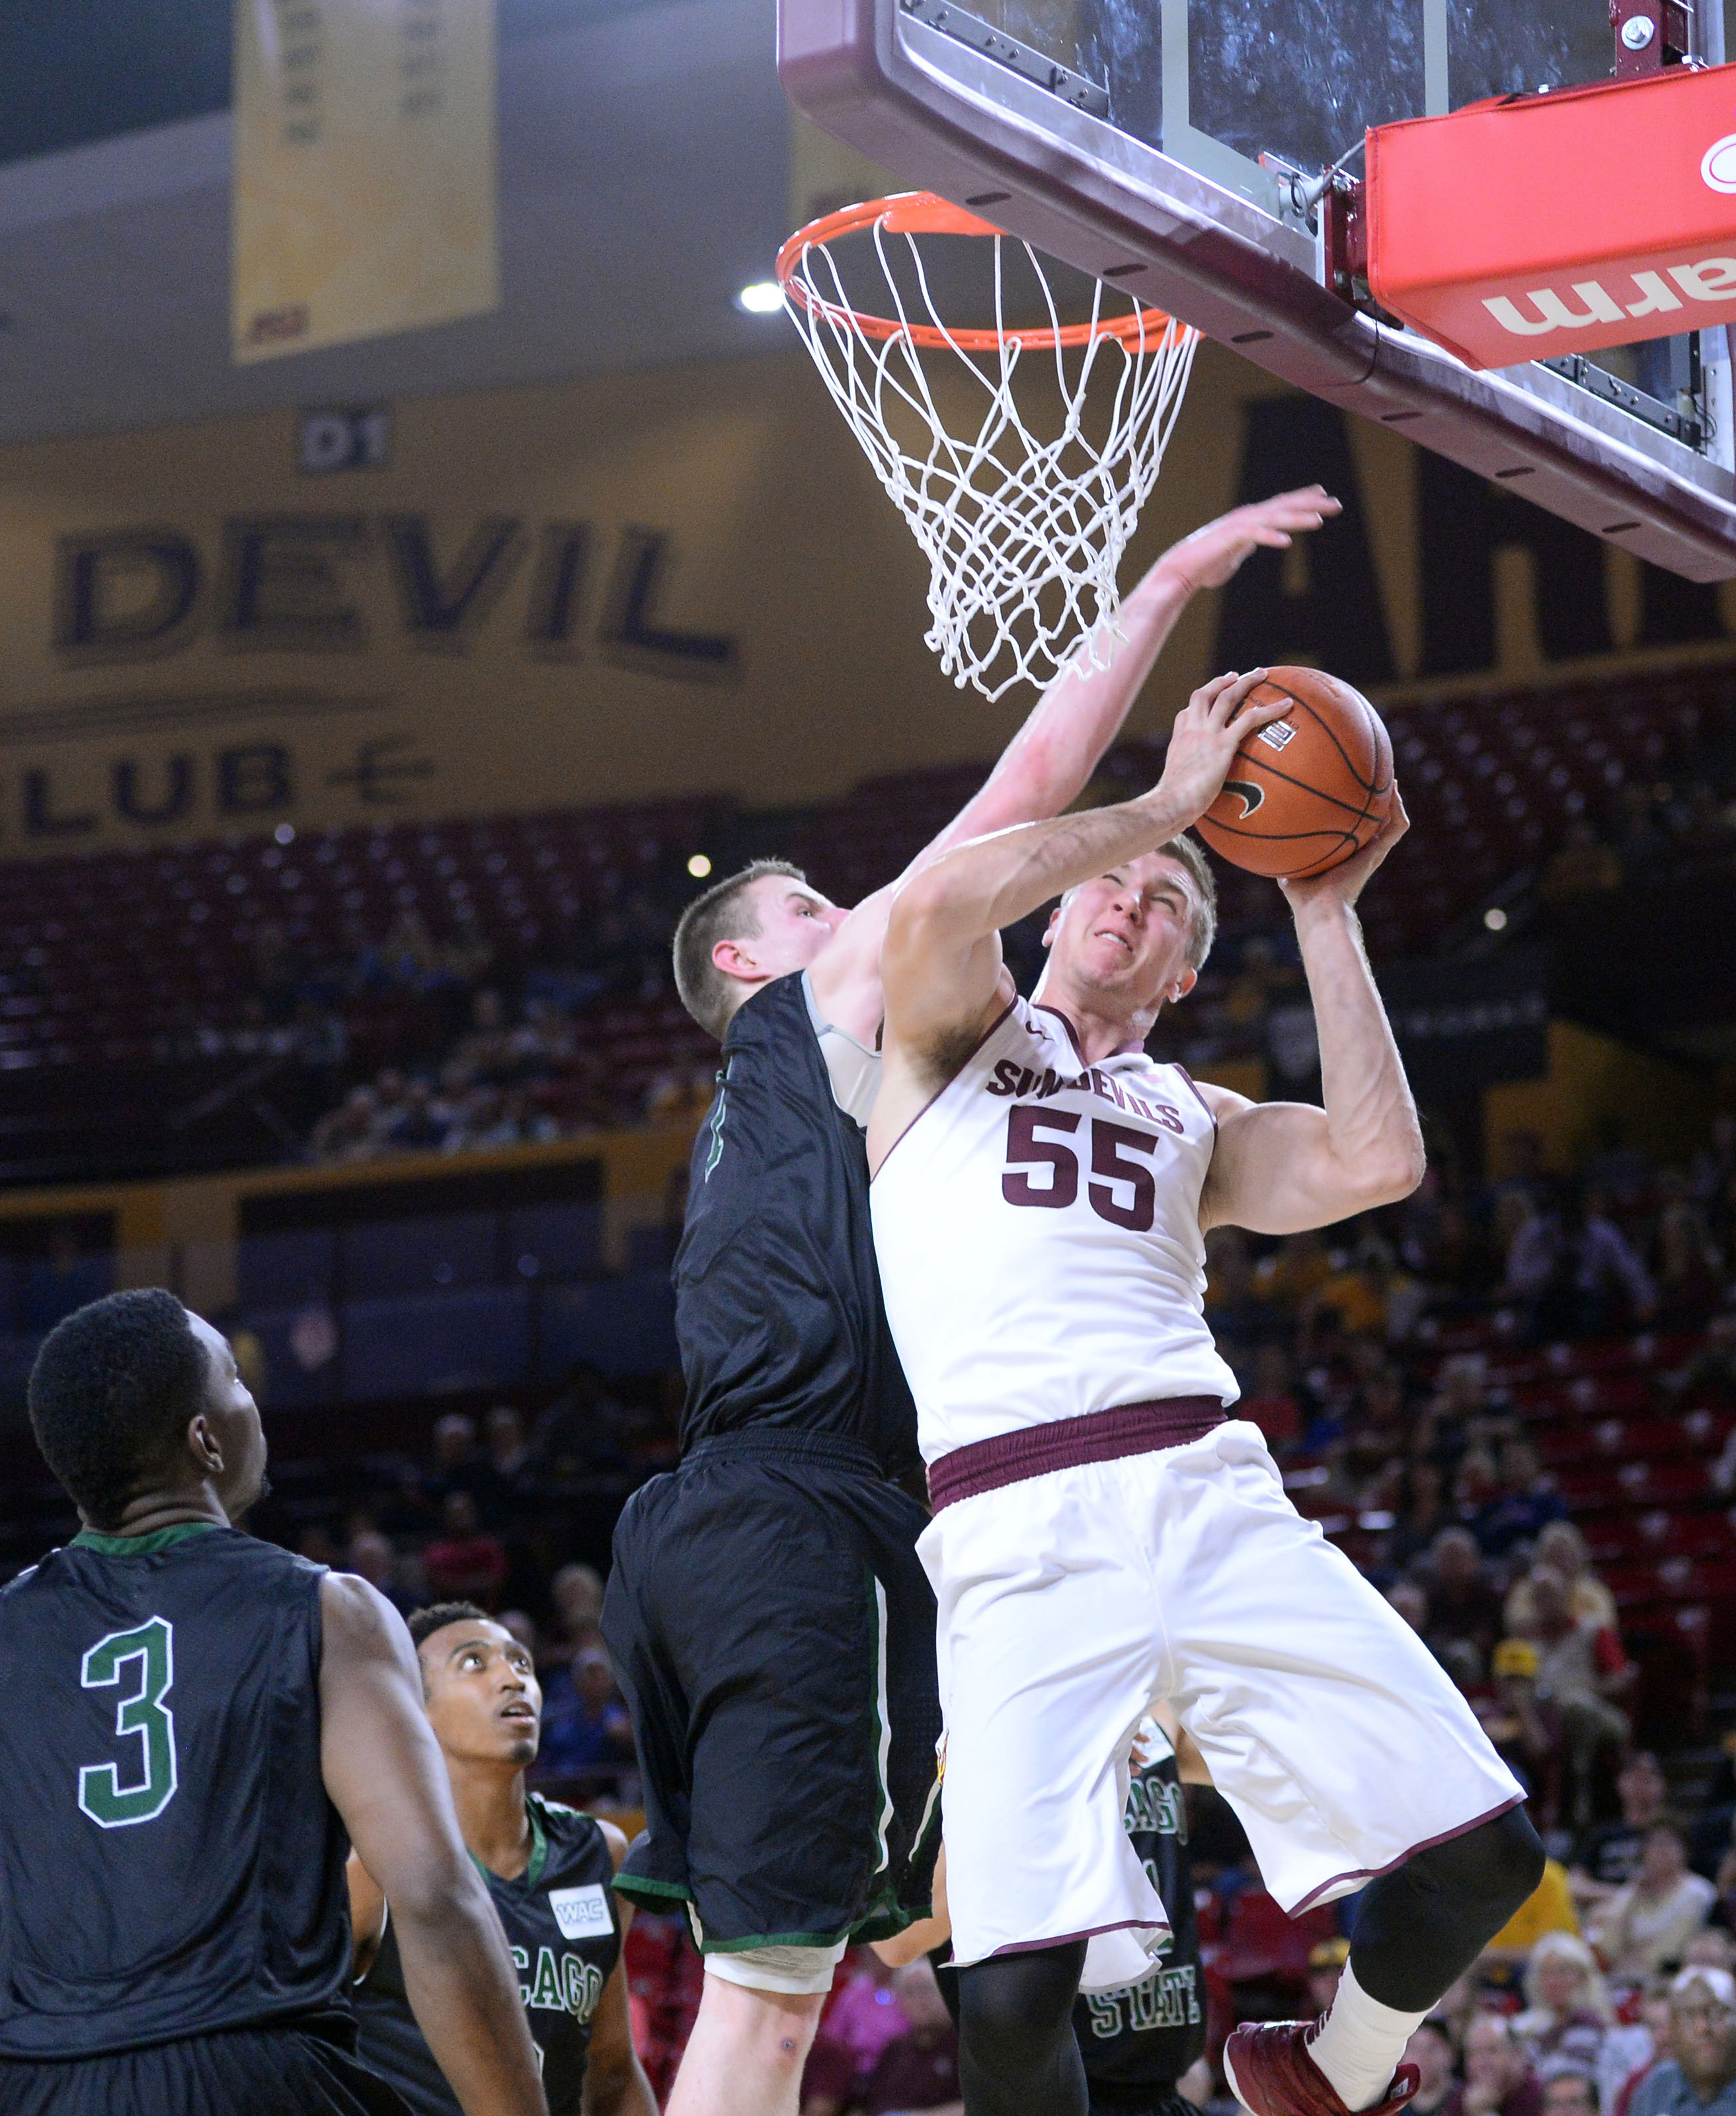 Connor MacDougal seeks a new beginning in New Mexico